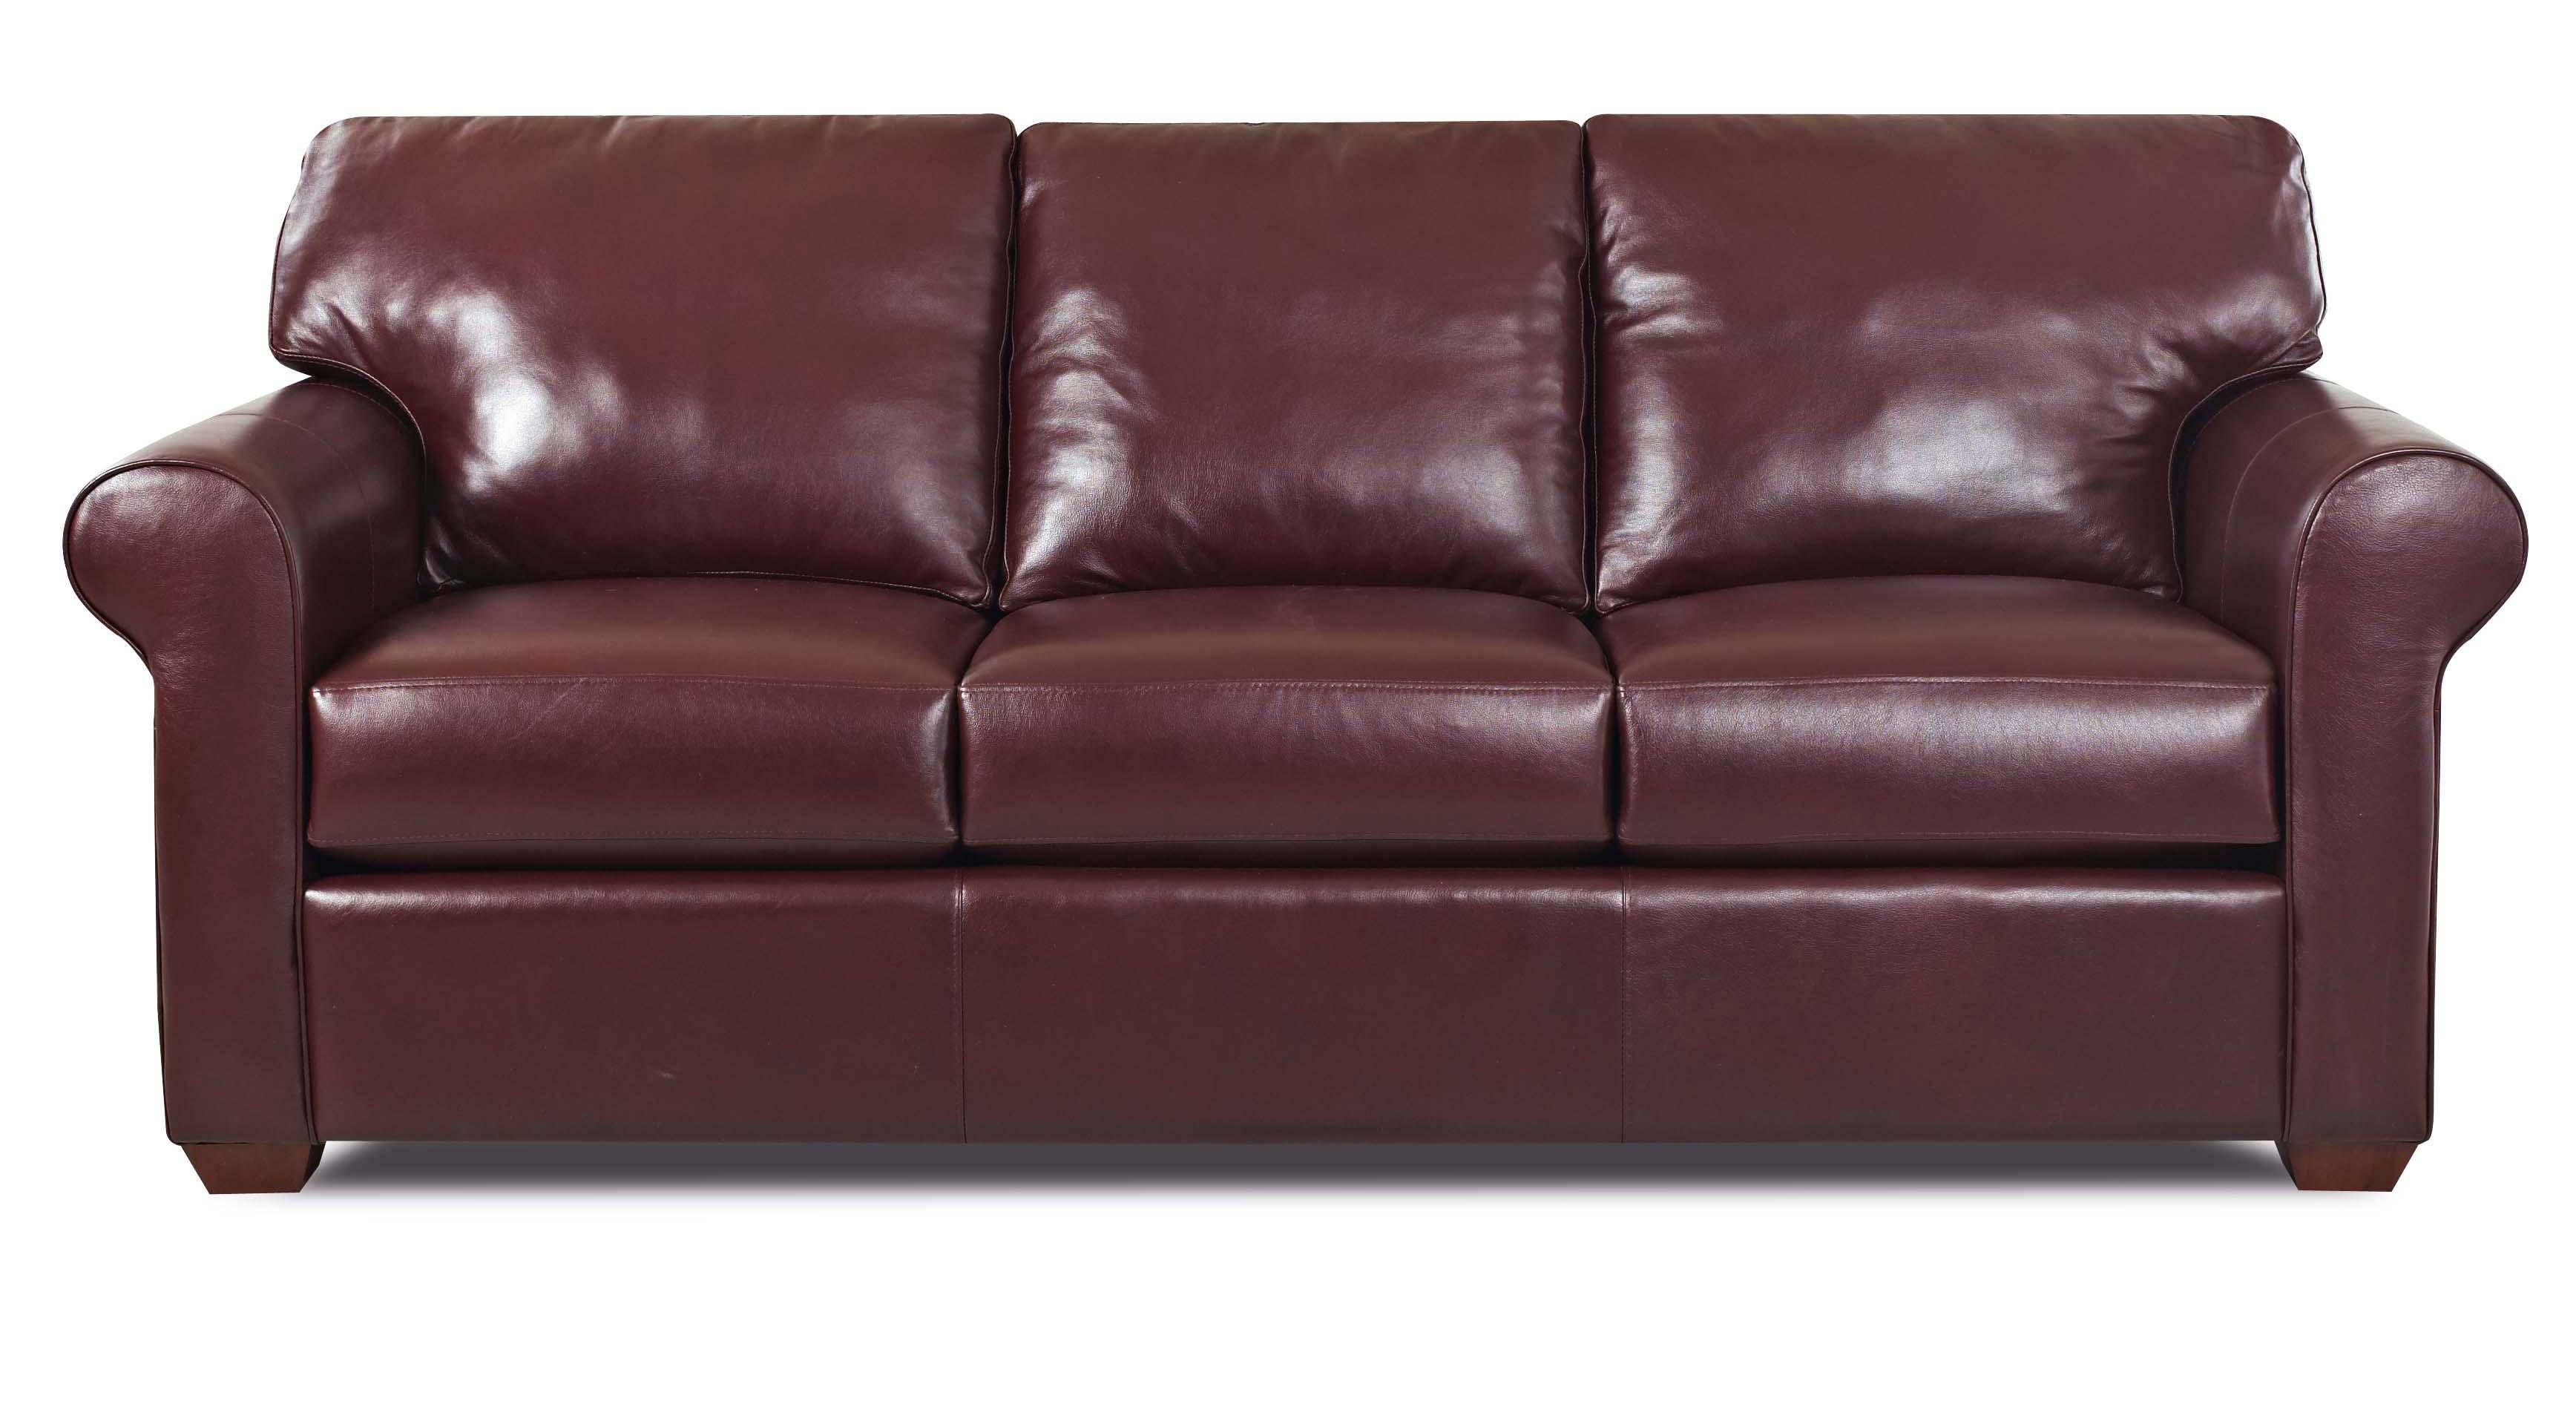 sofa wood frame exposed uk bad boy warranty klaussner canoy transitional with rolled arms and